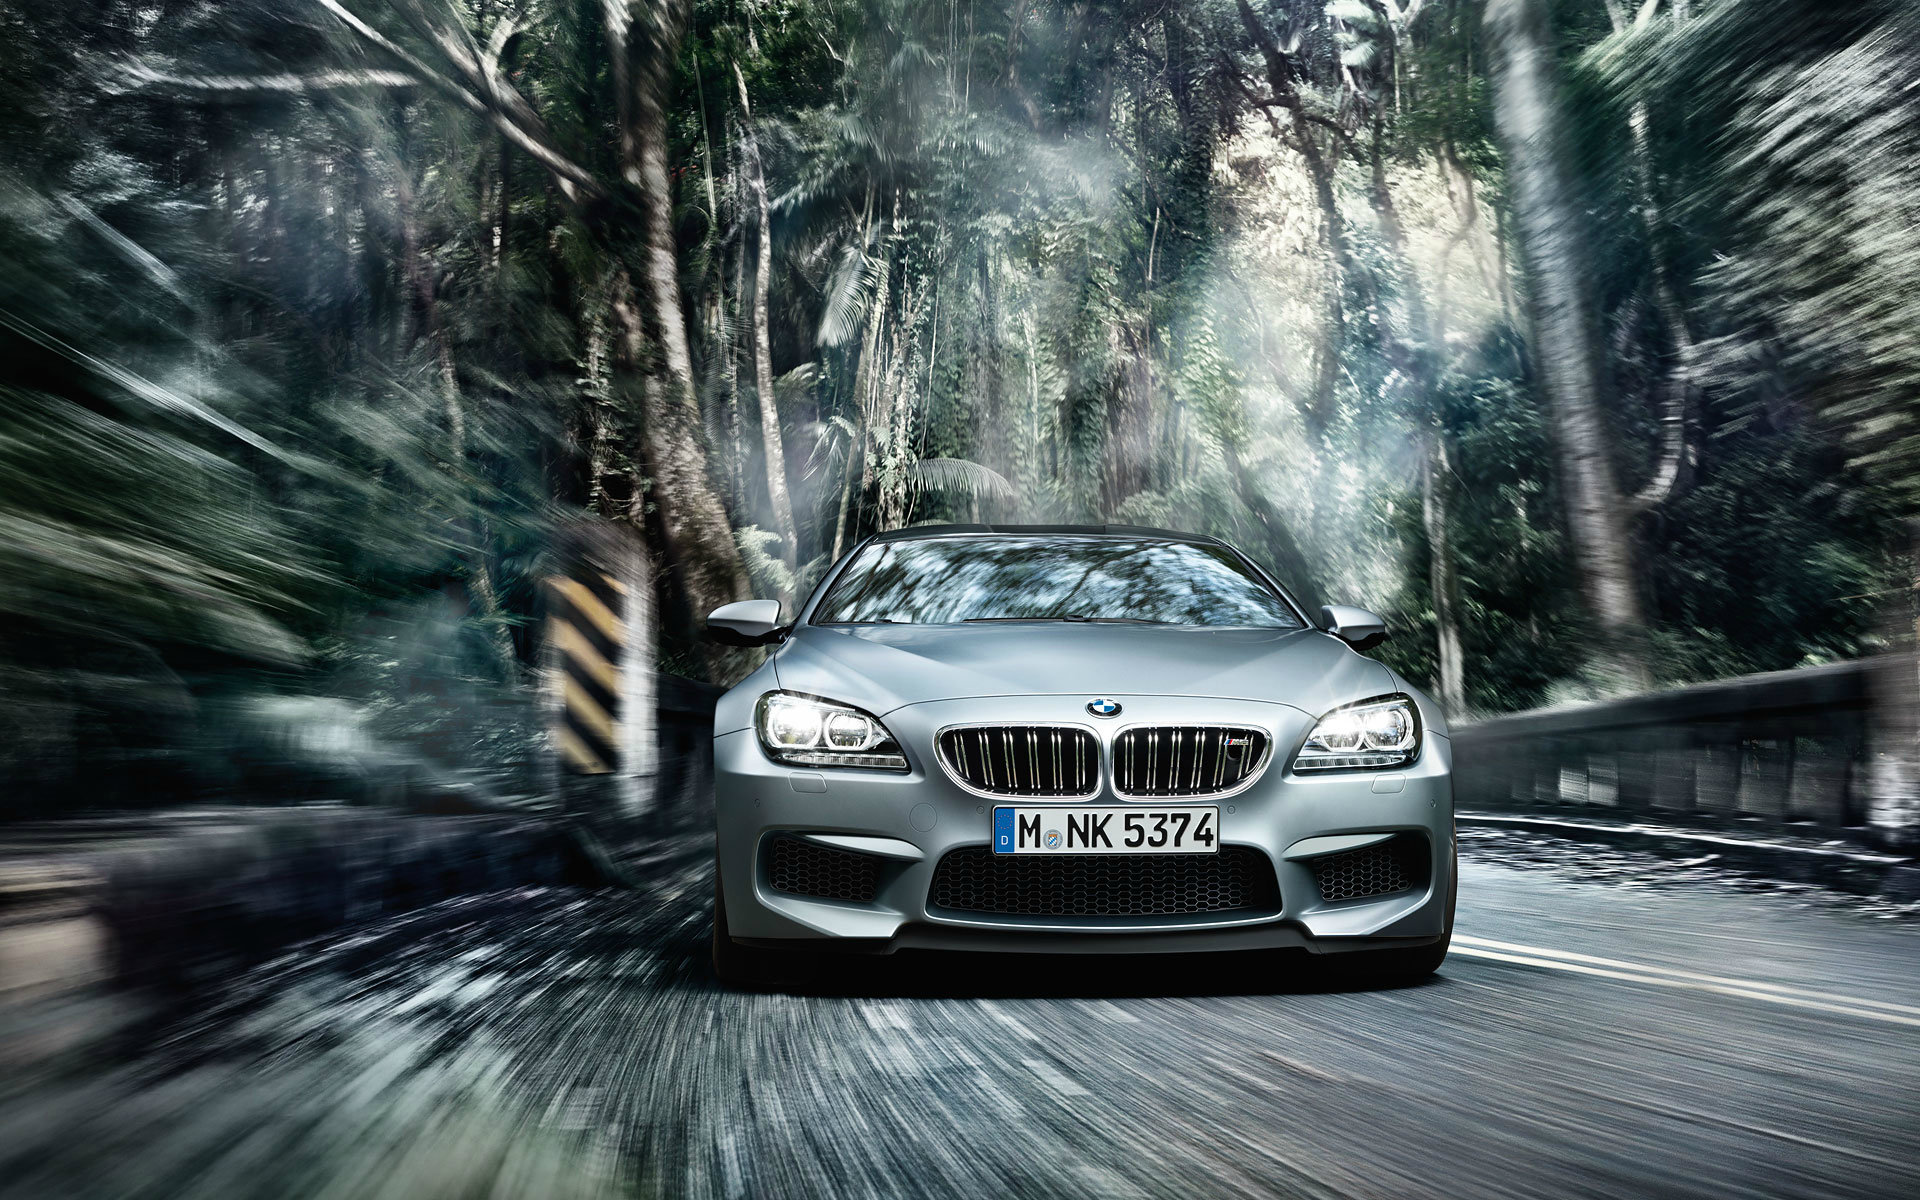 Download hd 1920x1200 BMW M6 PC background ID:27402 for free